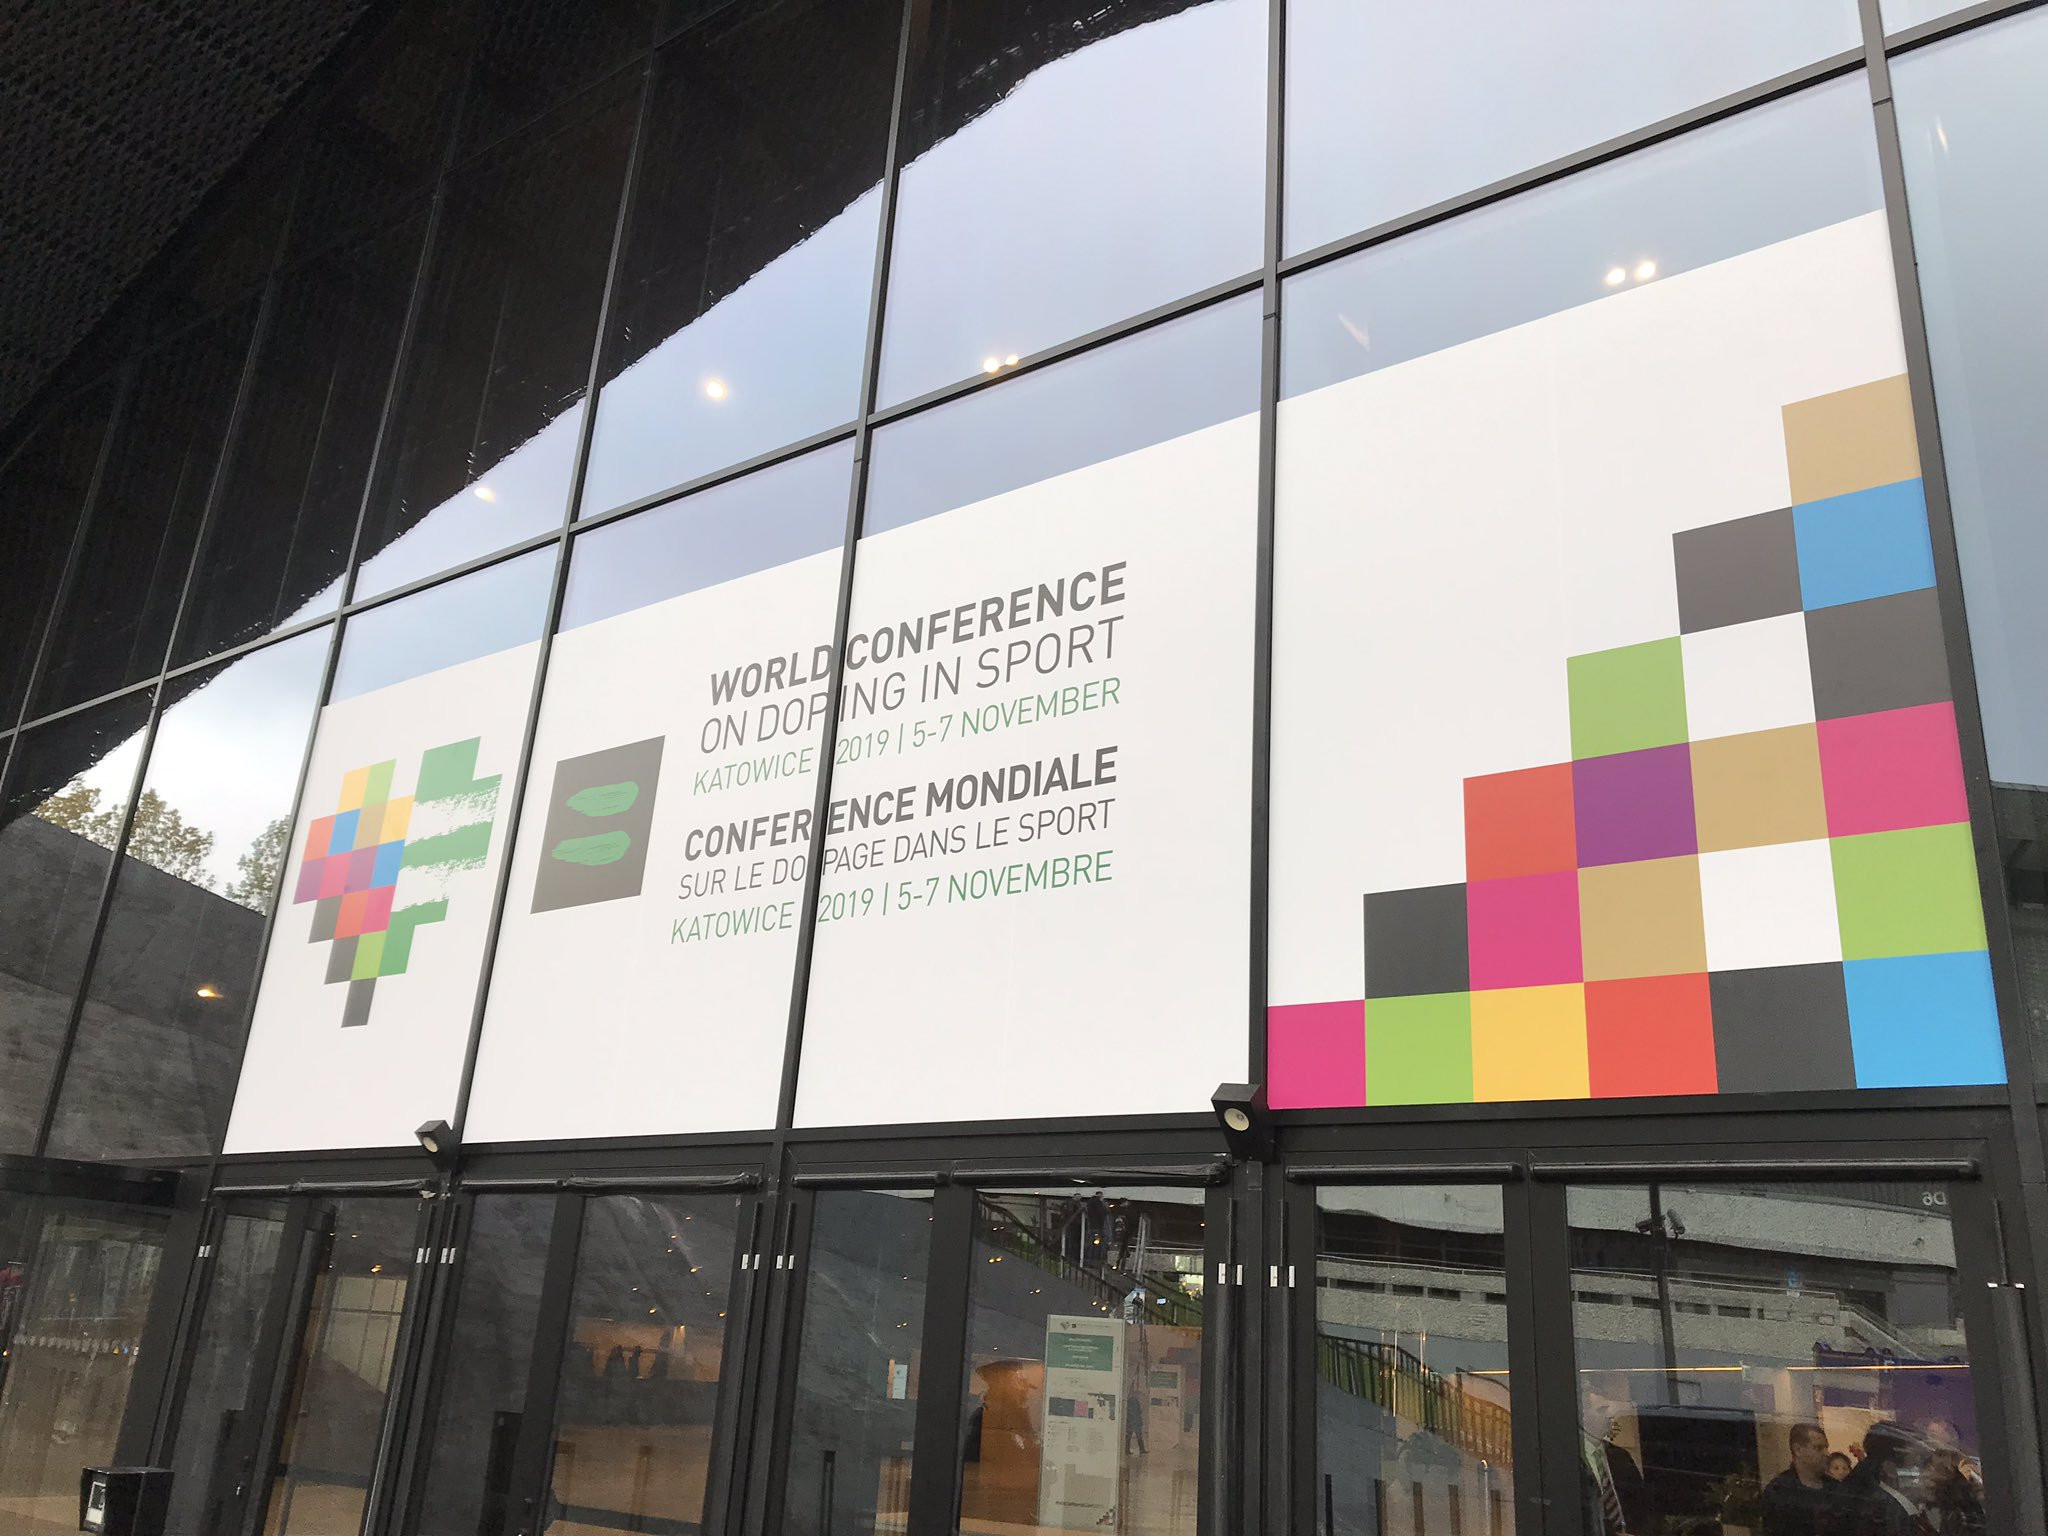 The event is taking place at Katowice's International Congress Centre ©Twitter